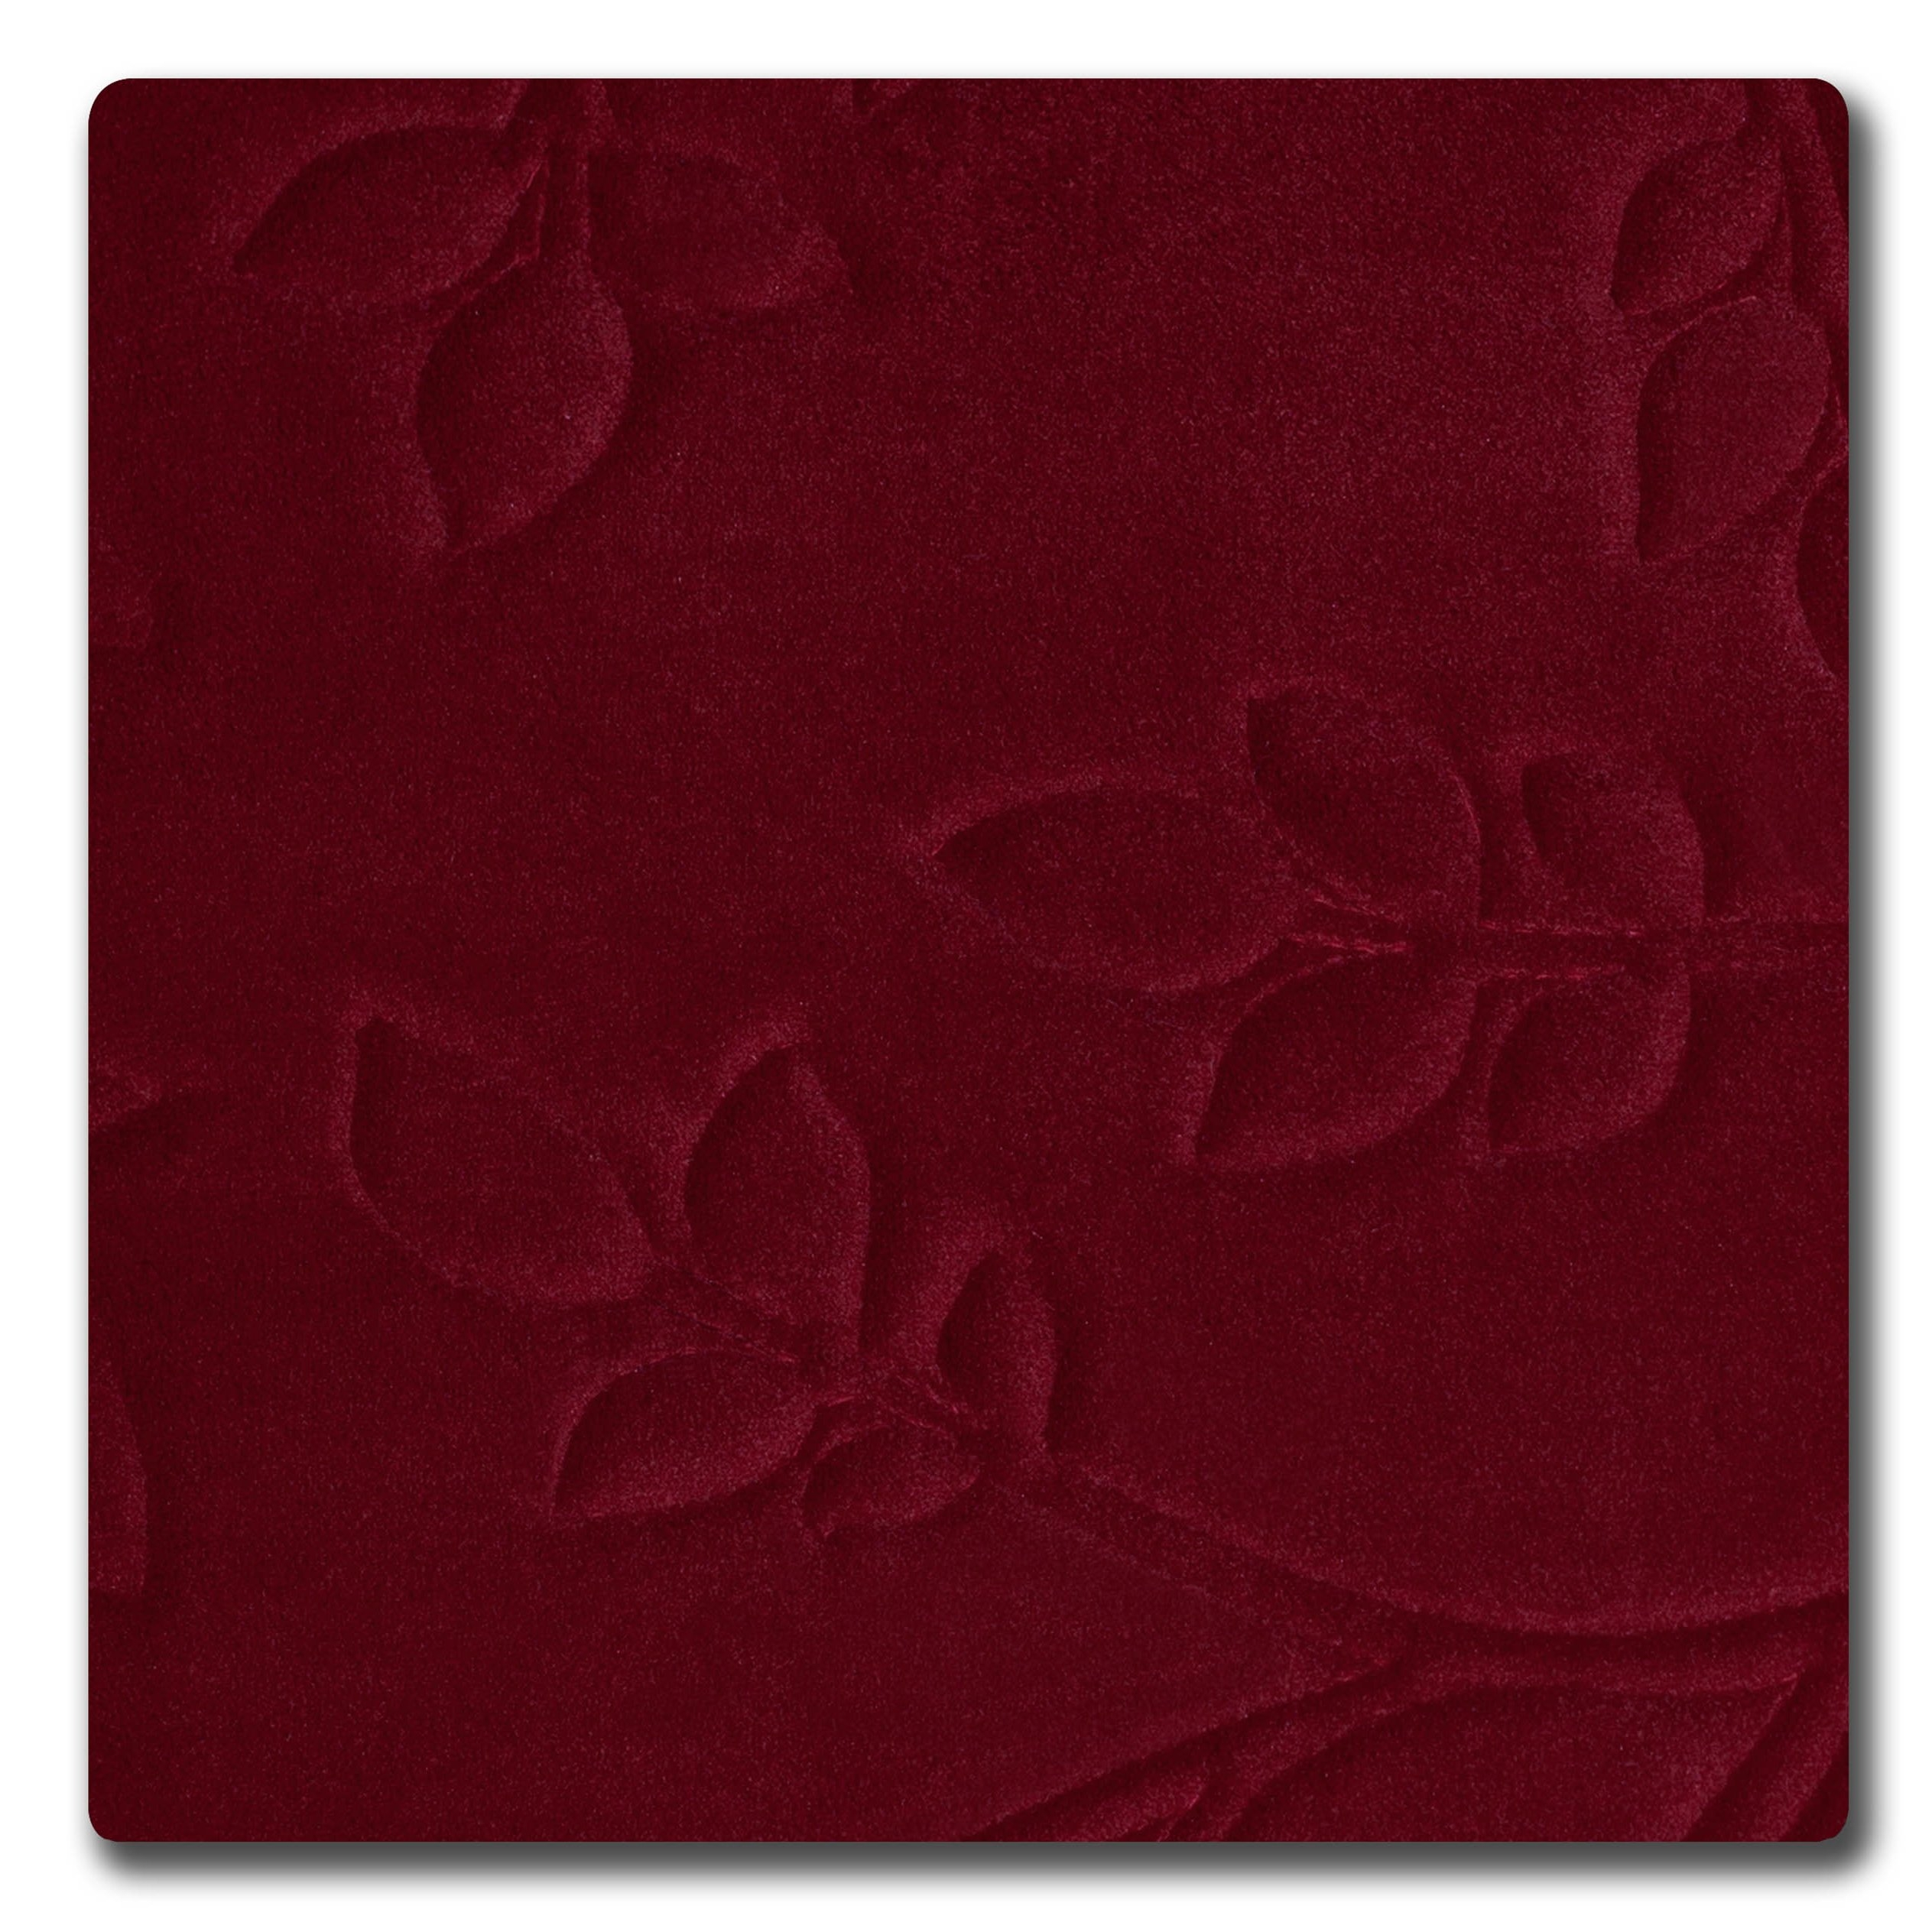 Black Memory Foam Bath Mat Runner2527 X 2527